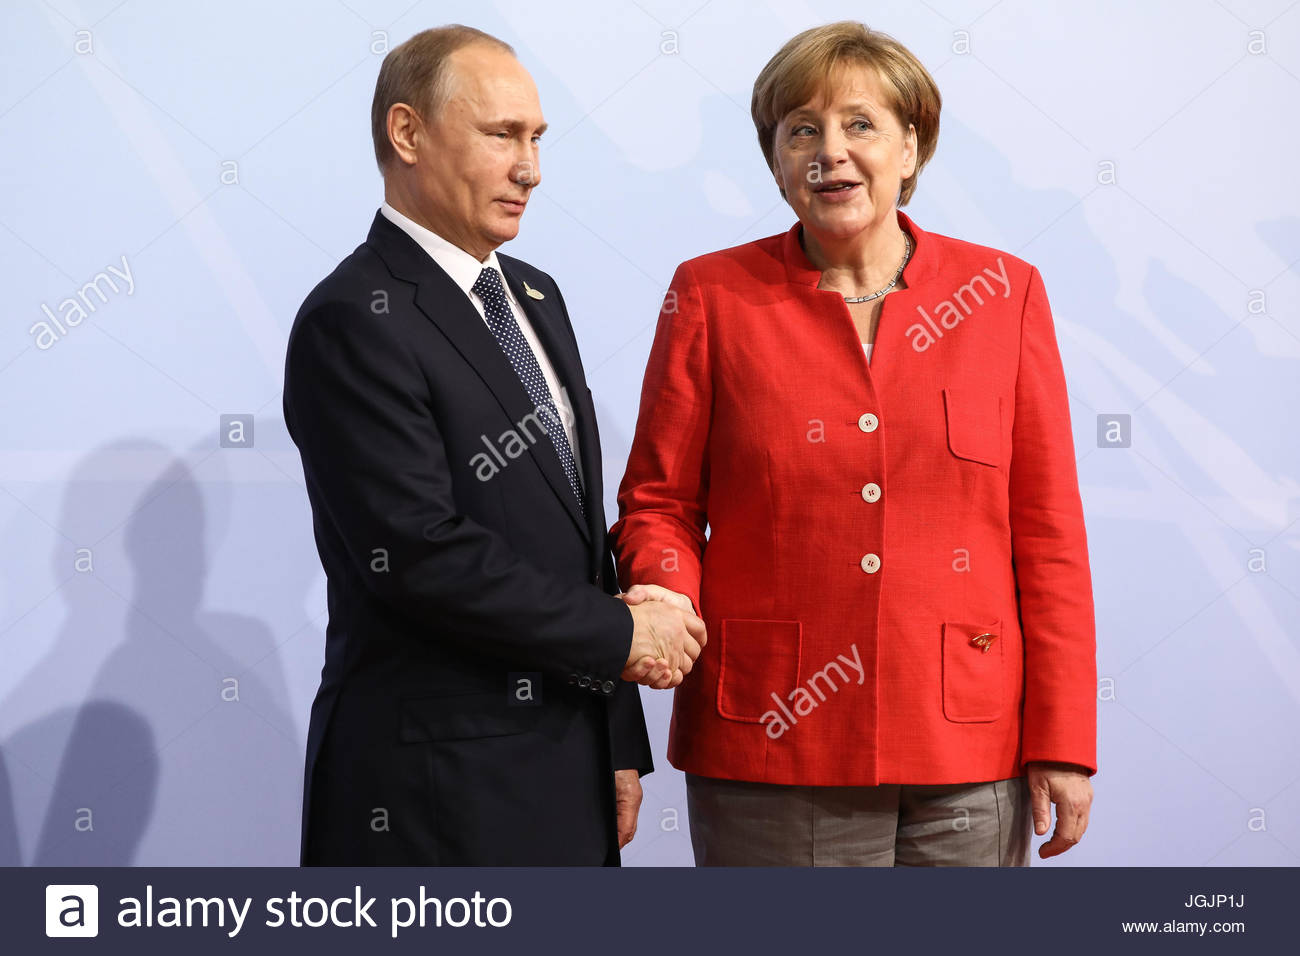 Hamburg, Germany. 7th Jul, 2017. Wladimir Putin, the president of Russia welcomes by German chancellor Angela Merkel - Stock Image